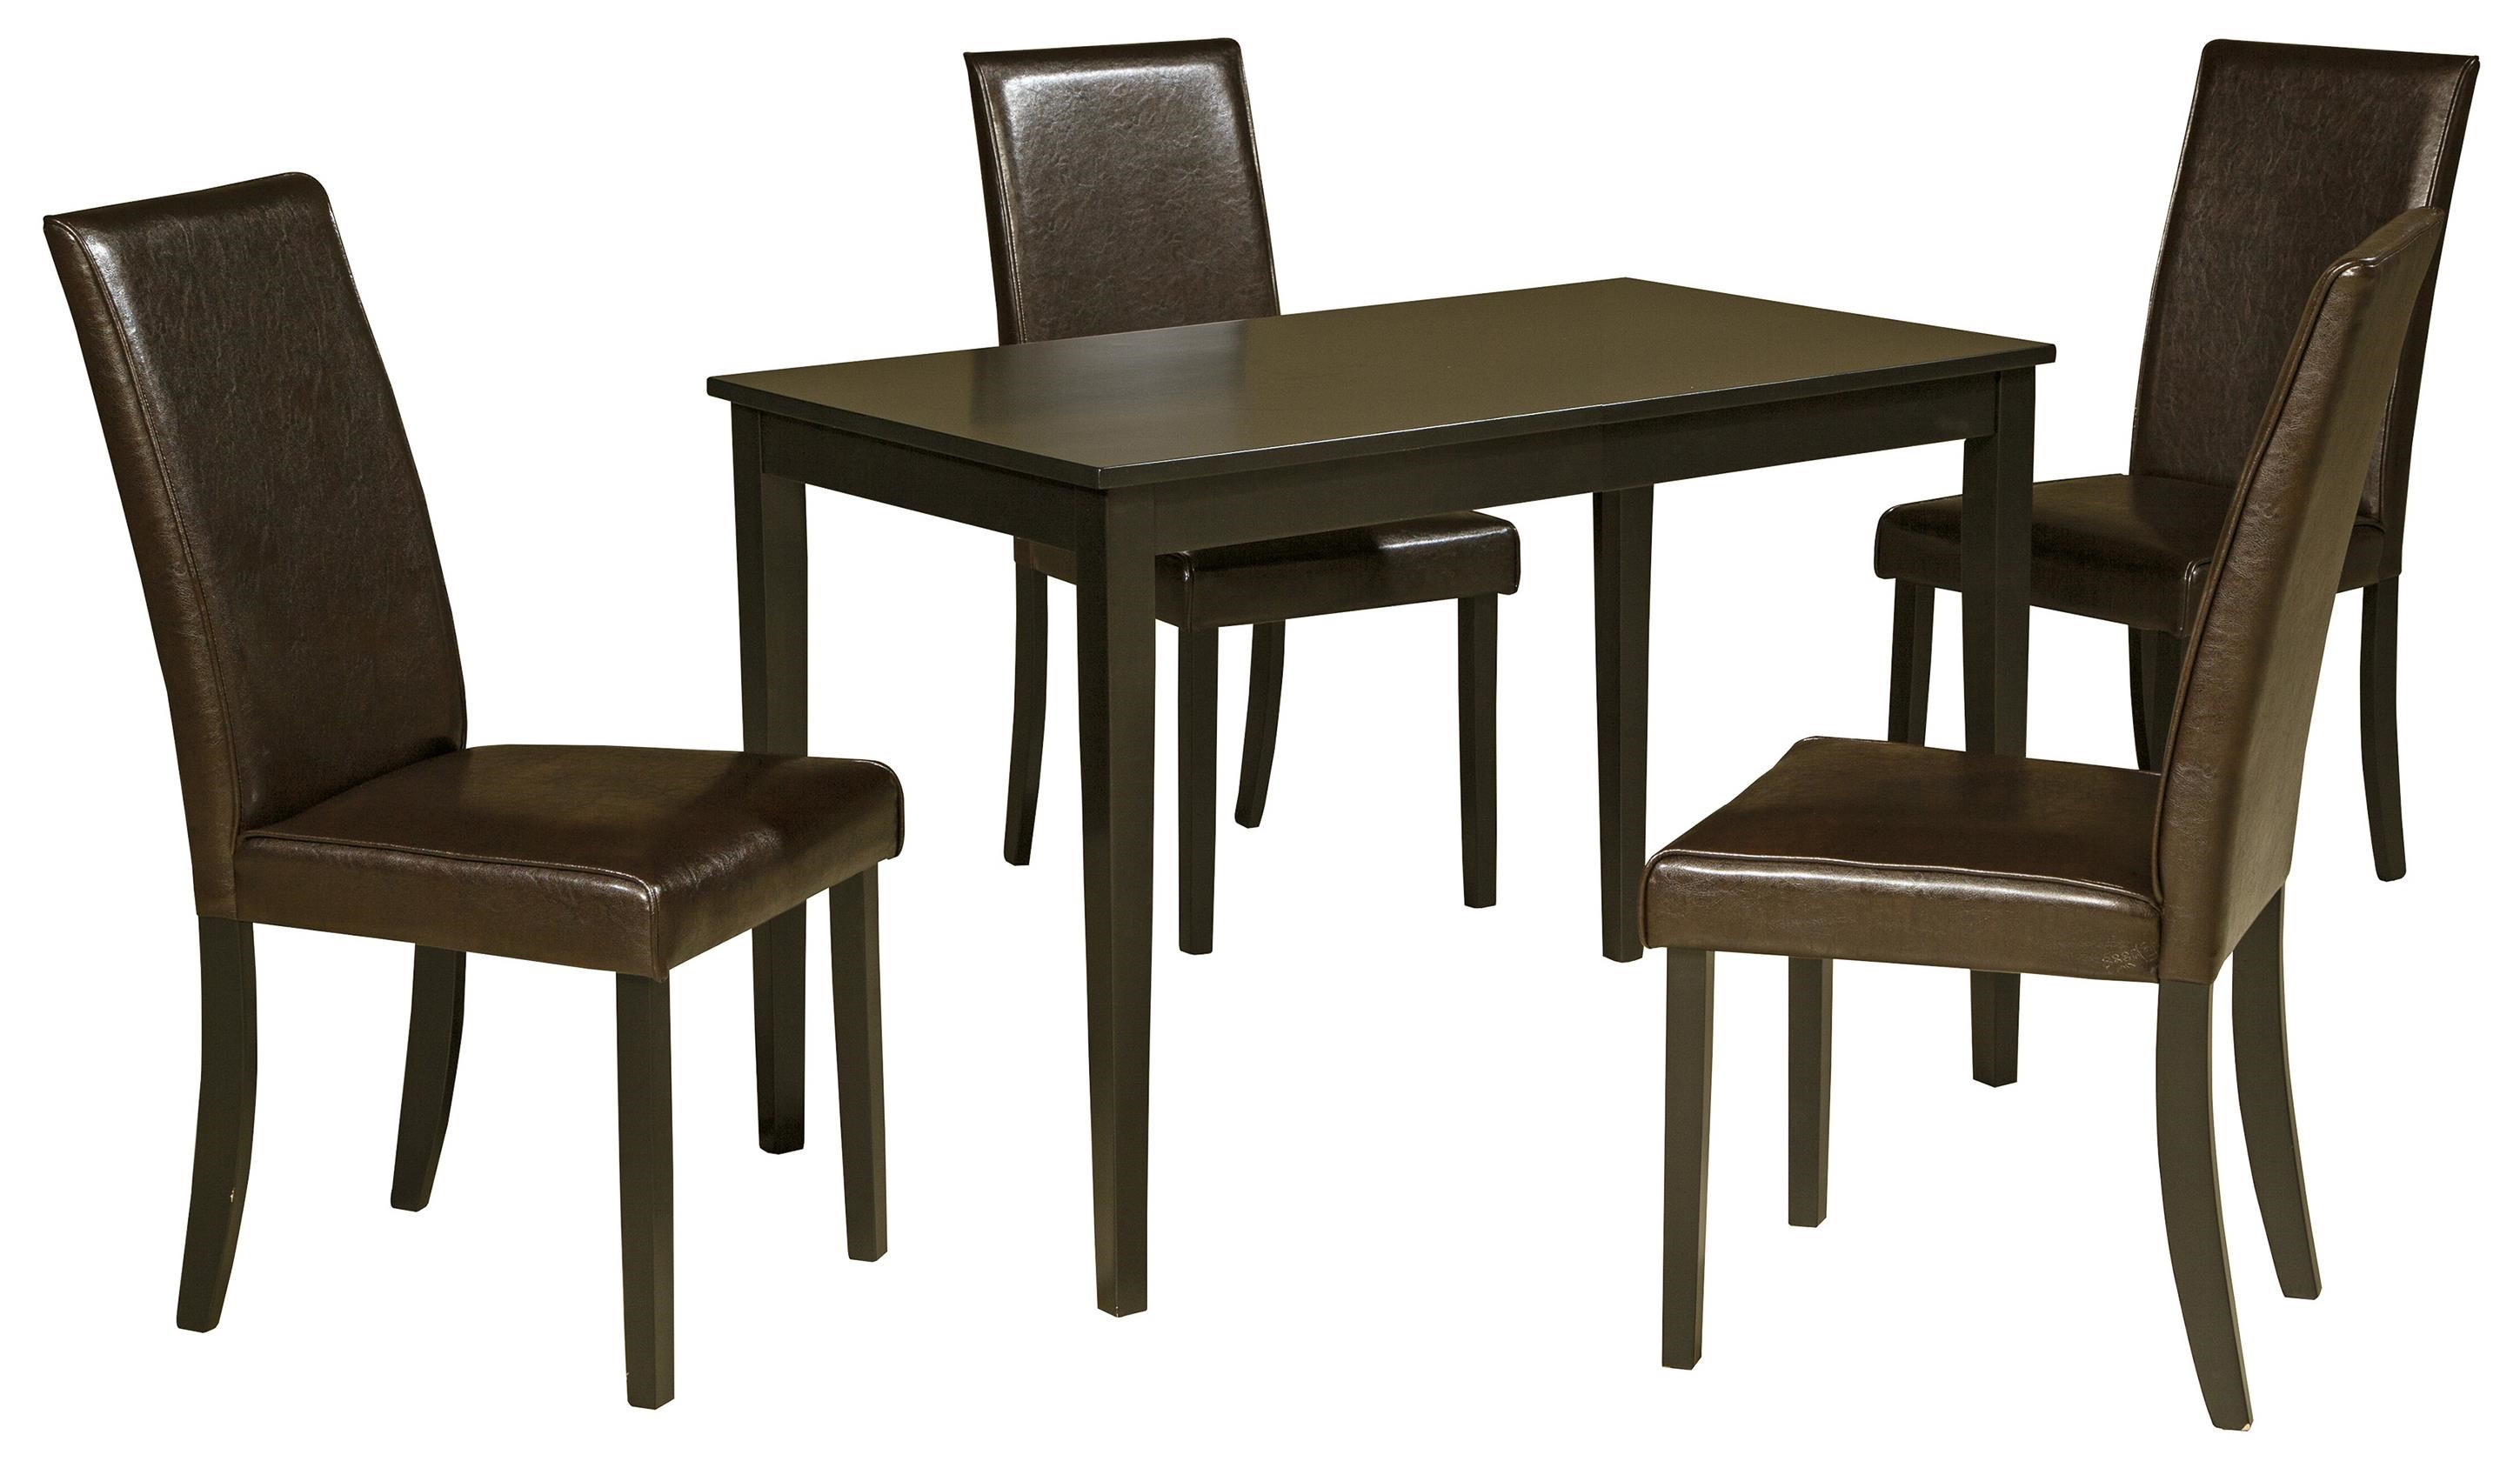 Lease To Own Furniture At Ashley Furniture Furniture Dining 5 Piece Sets Signature Design by Ashley Furniture ...